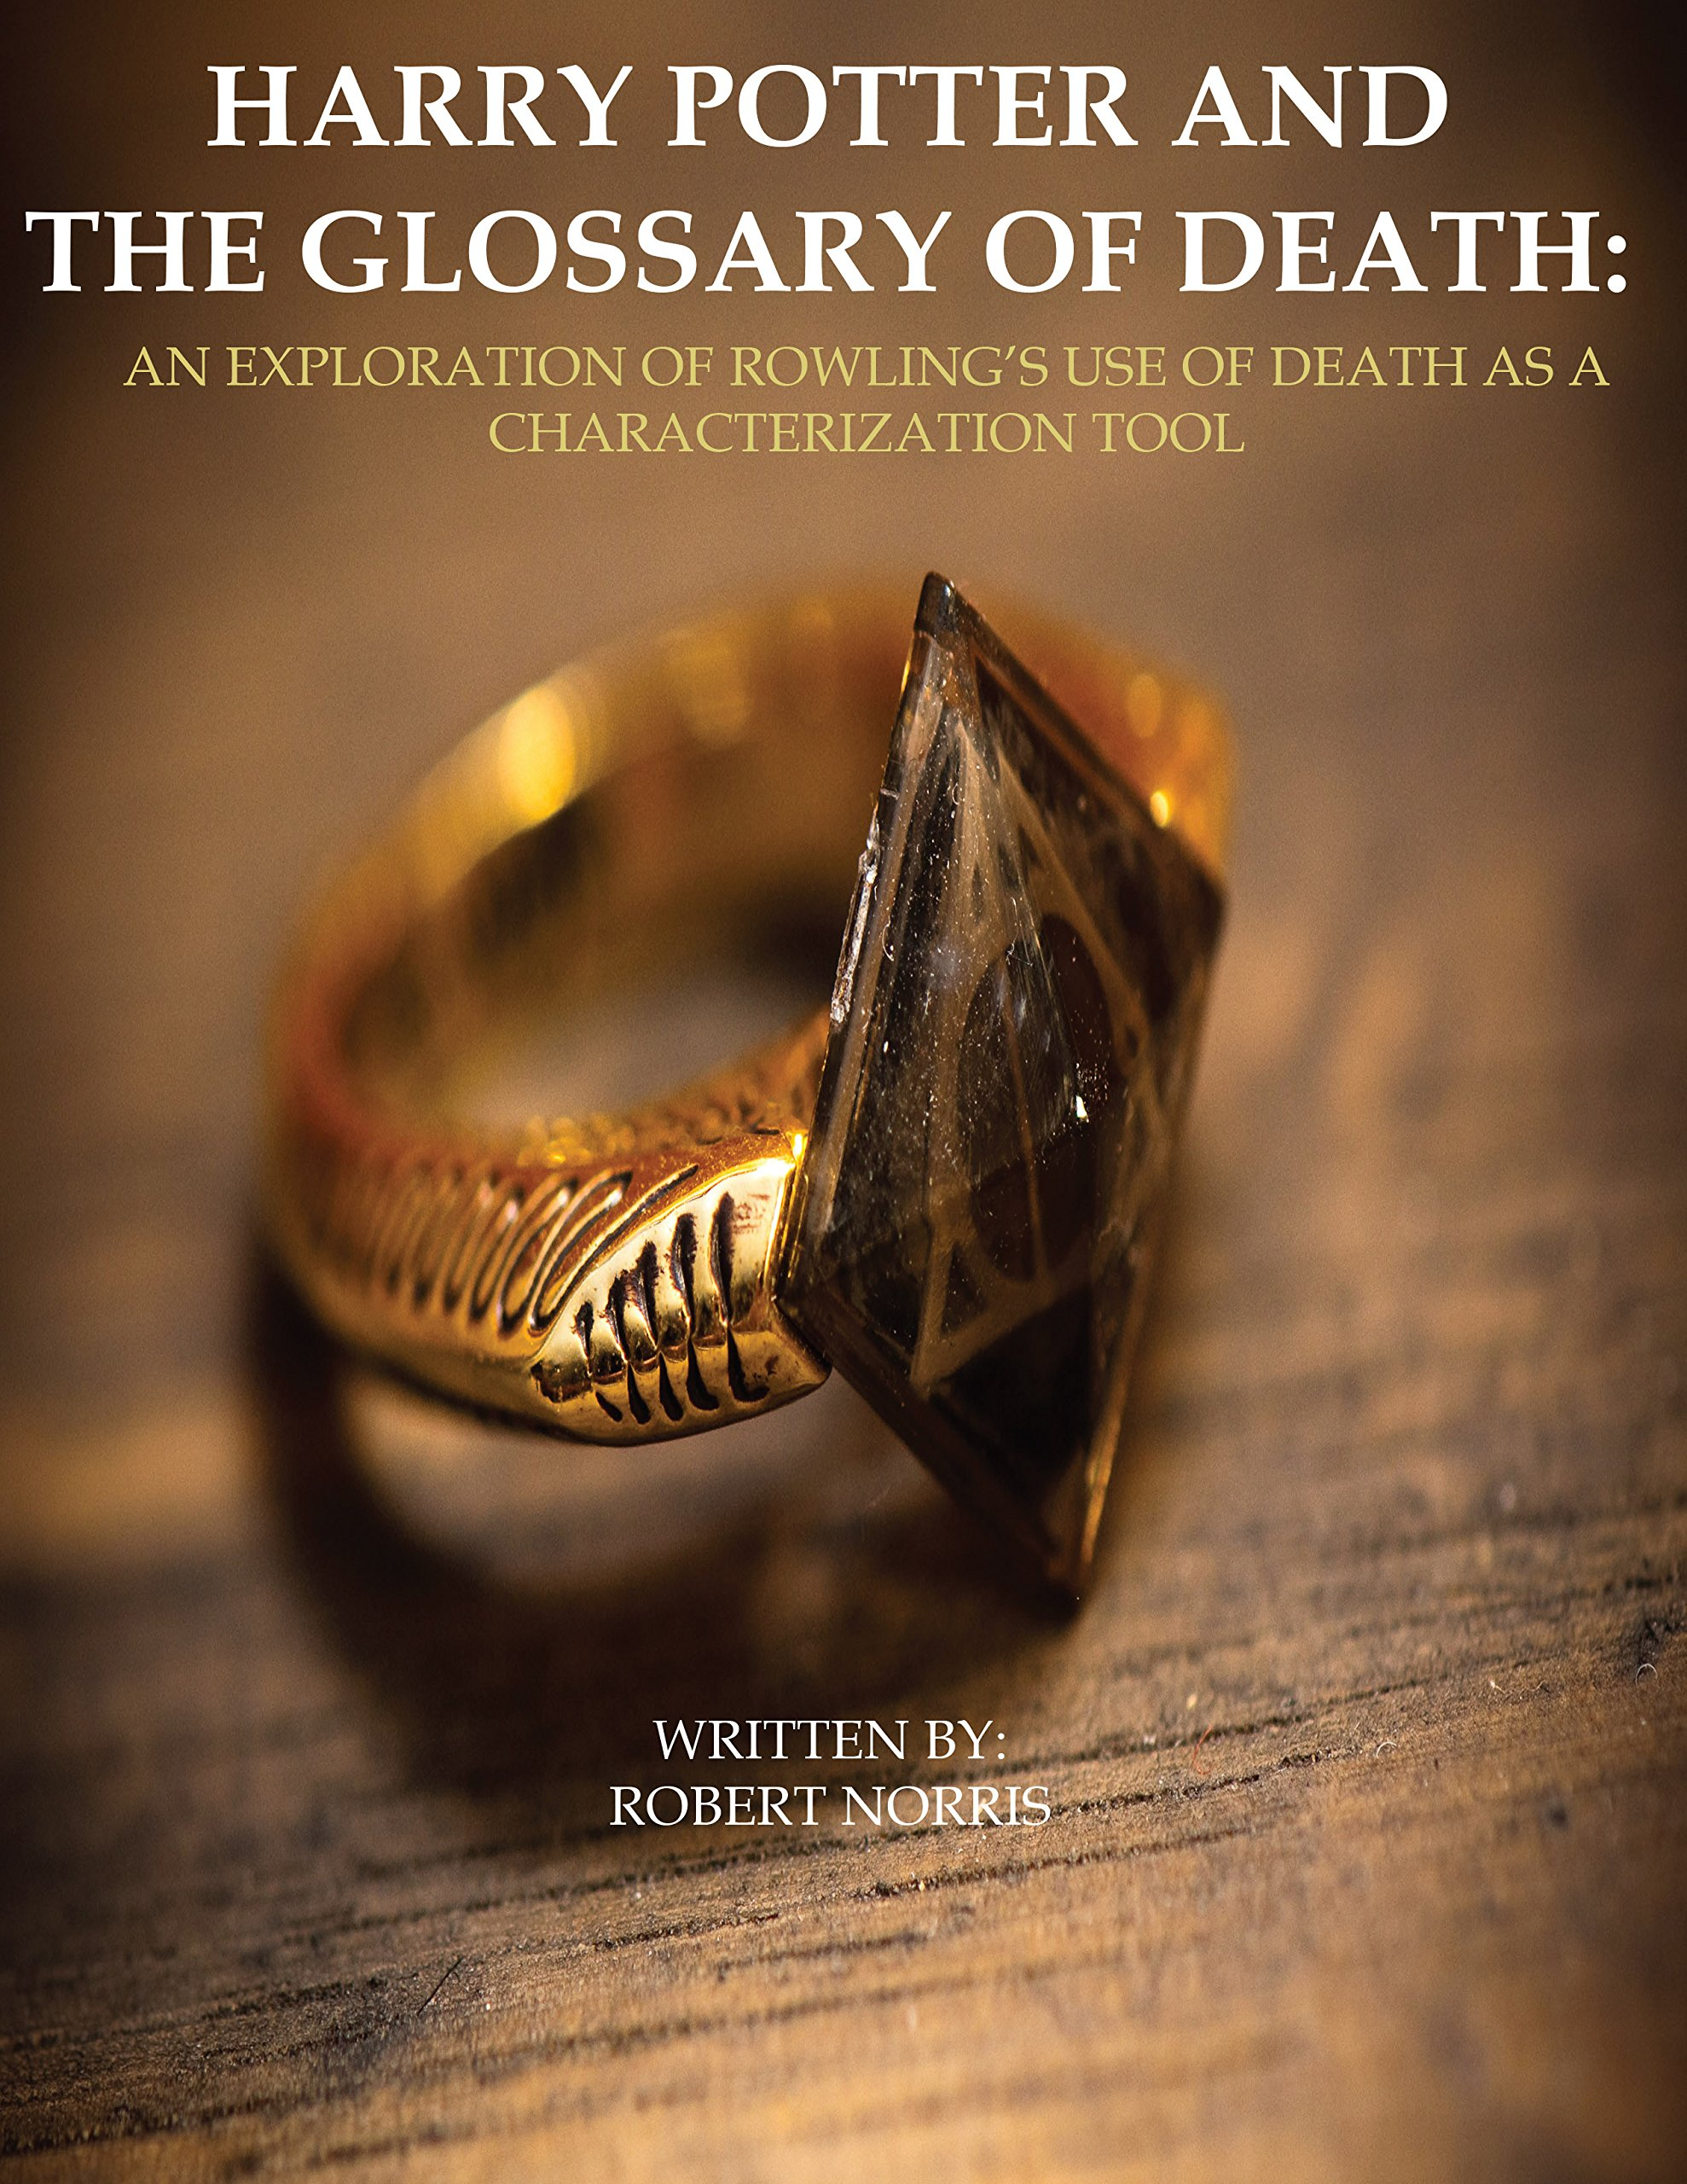 Harry Potter and the Glossary of Death: An Exploration of Rowling's Use of Death as a Characterization Tool